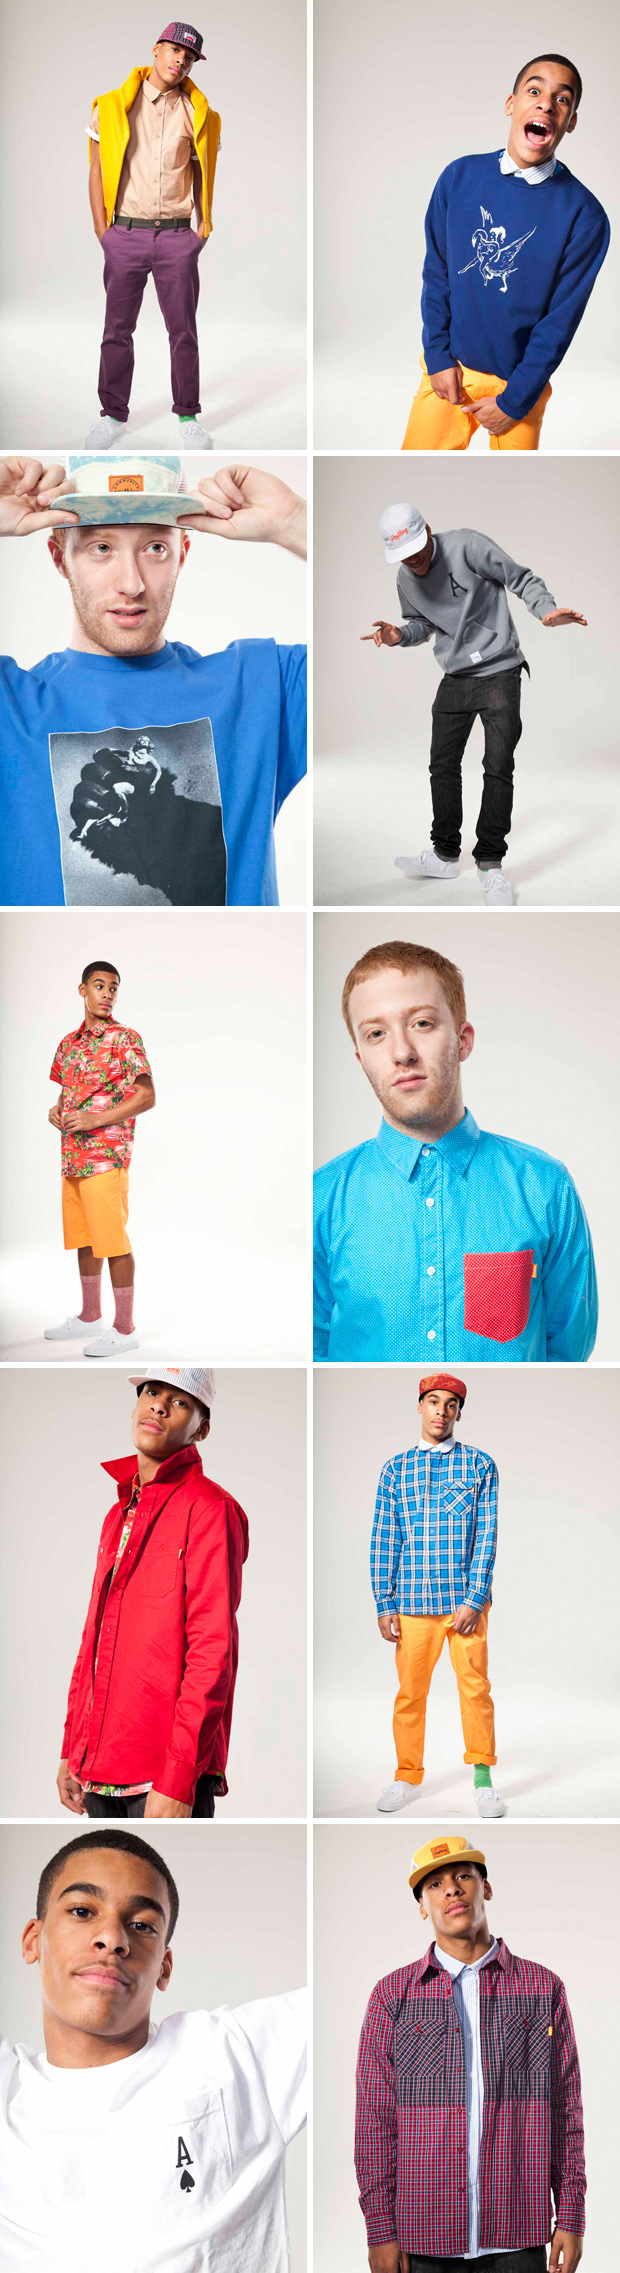 anything 2011 springsummer collection lookbook